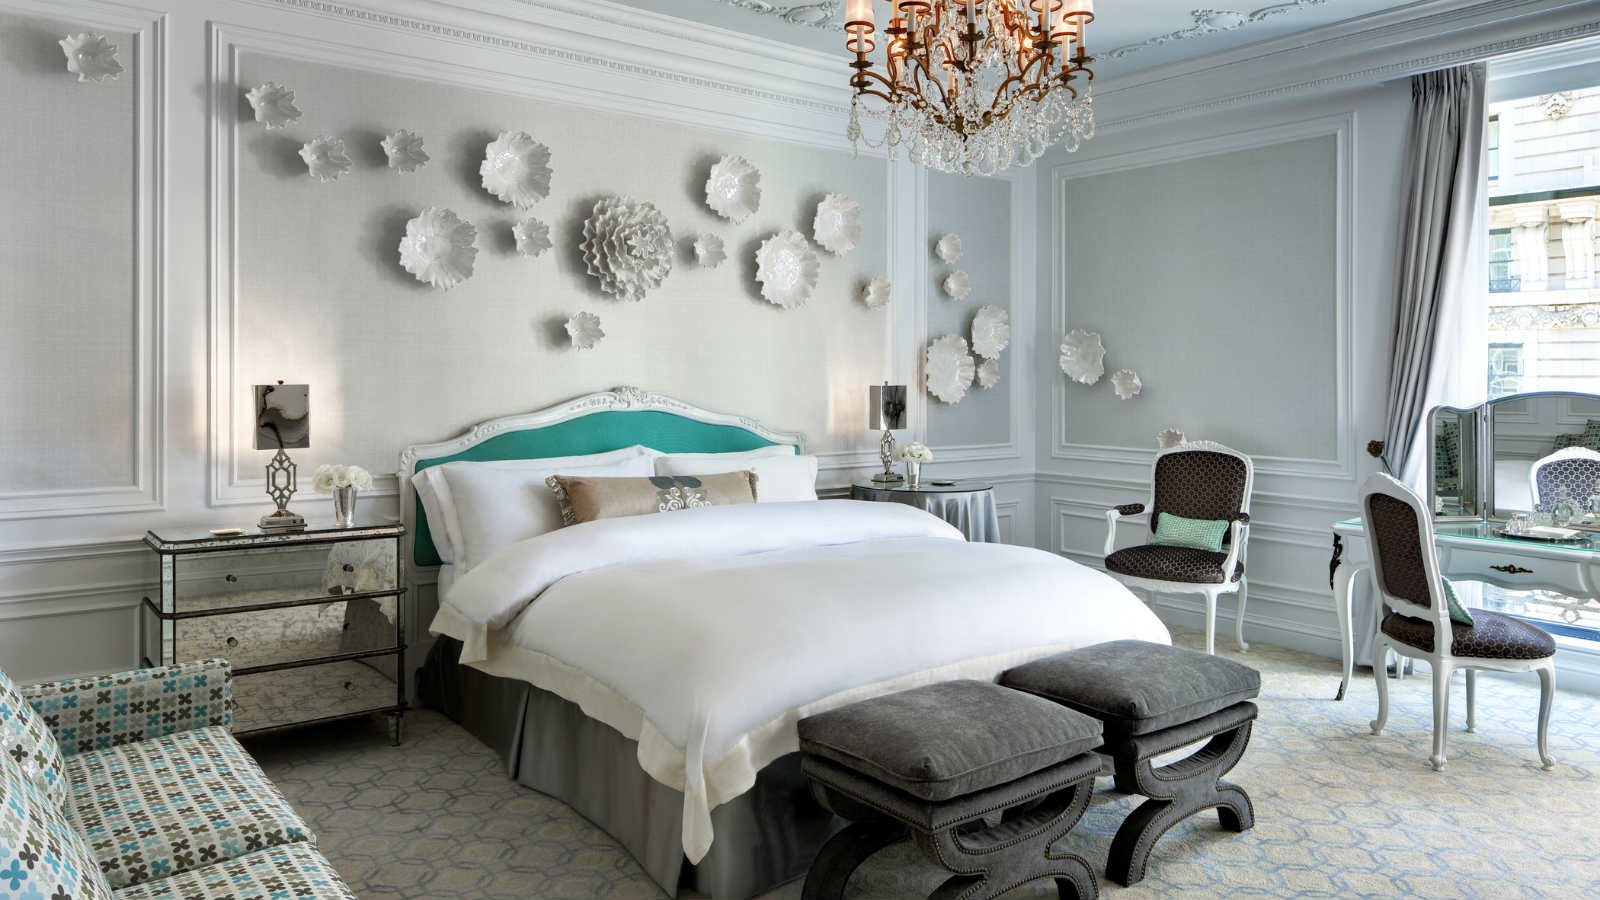 Top 10 best luxury hotels in new york the luxury travel expert - New york girls room ...